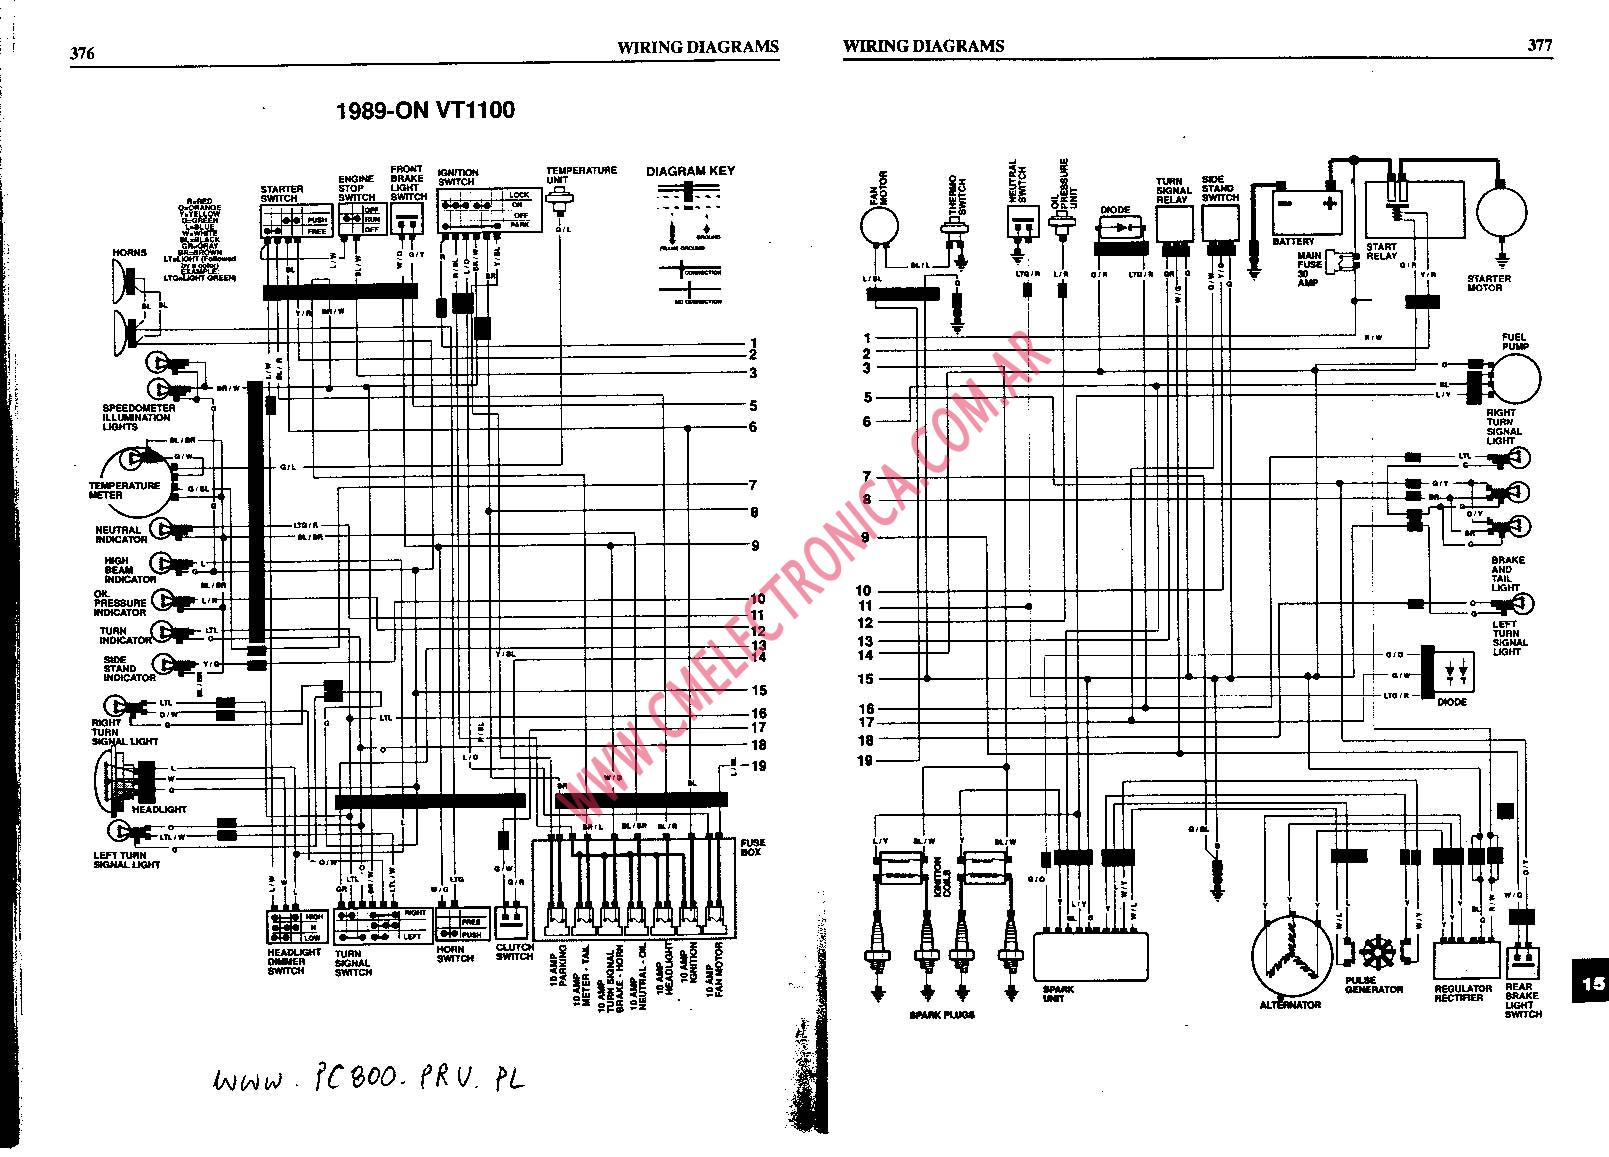 2000 vt1100 wiring diagram 2004 honda accord ke light wiring diagrams bull wiring 06 vt1100 wiring diagram